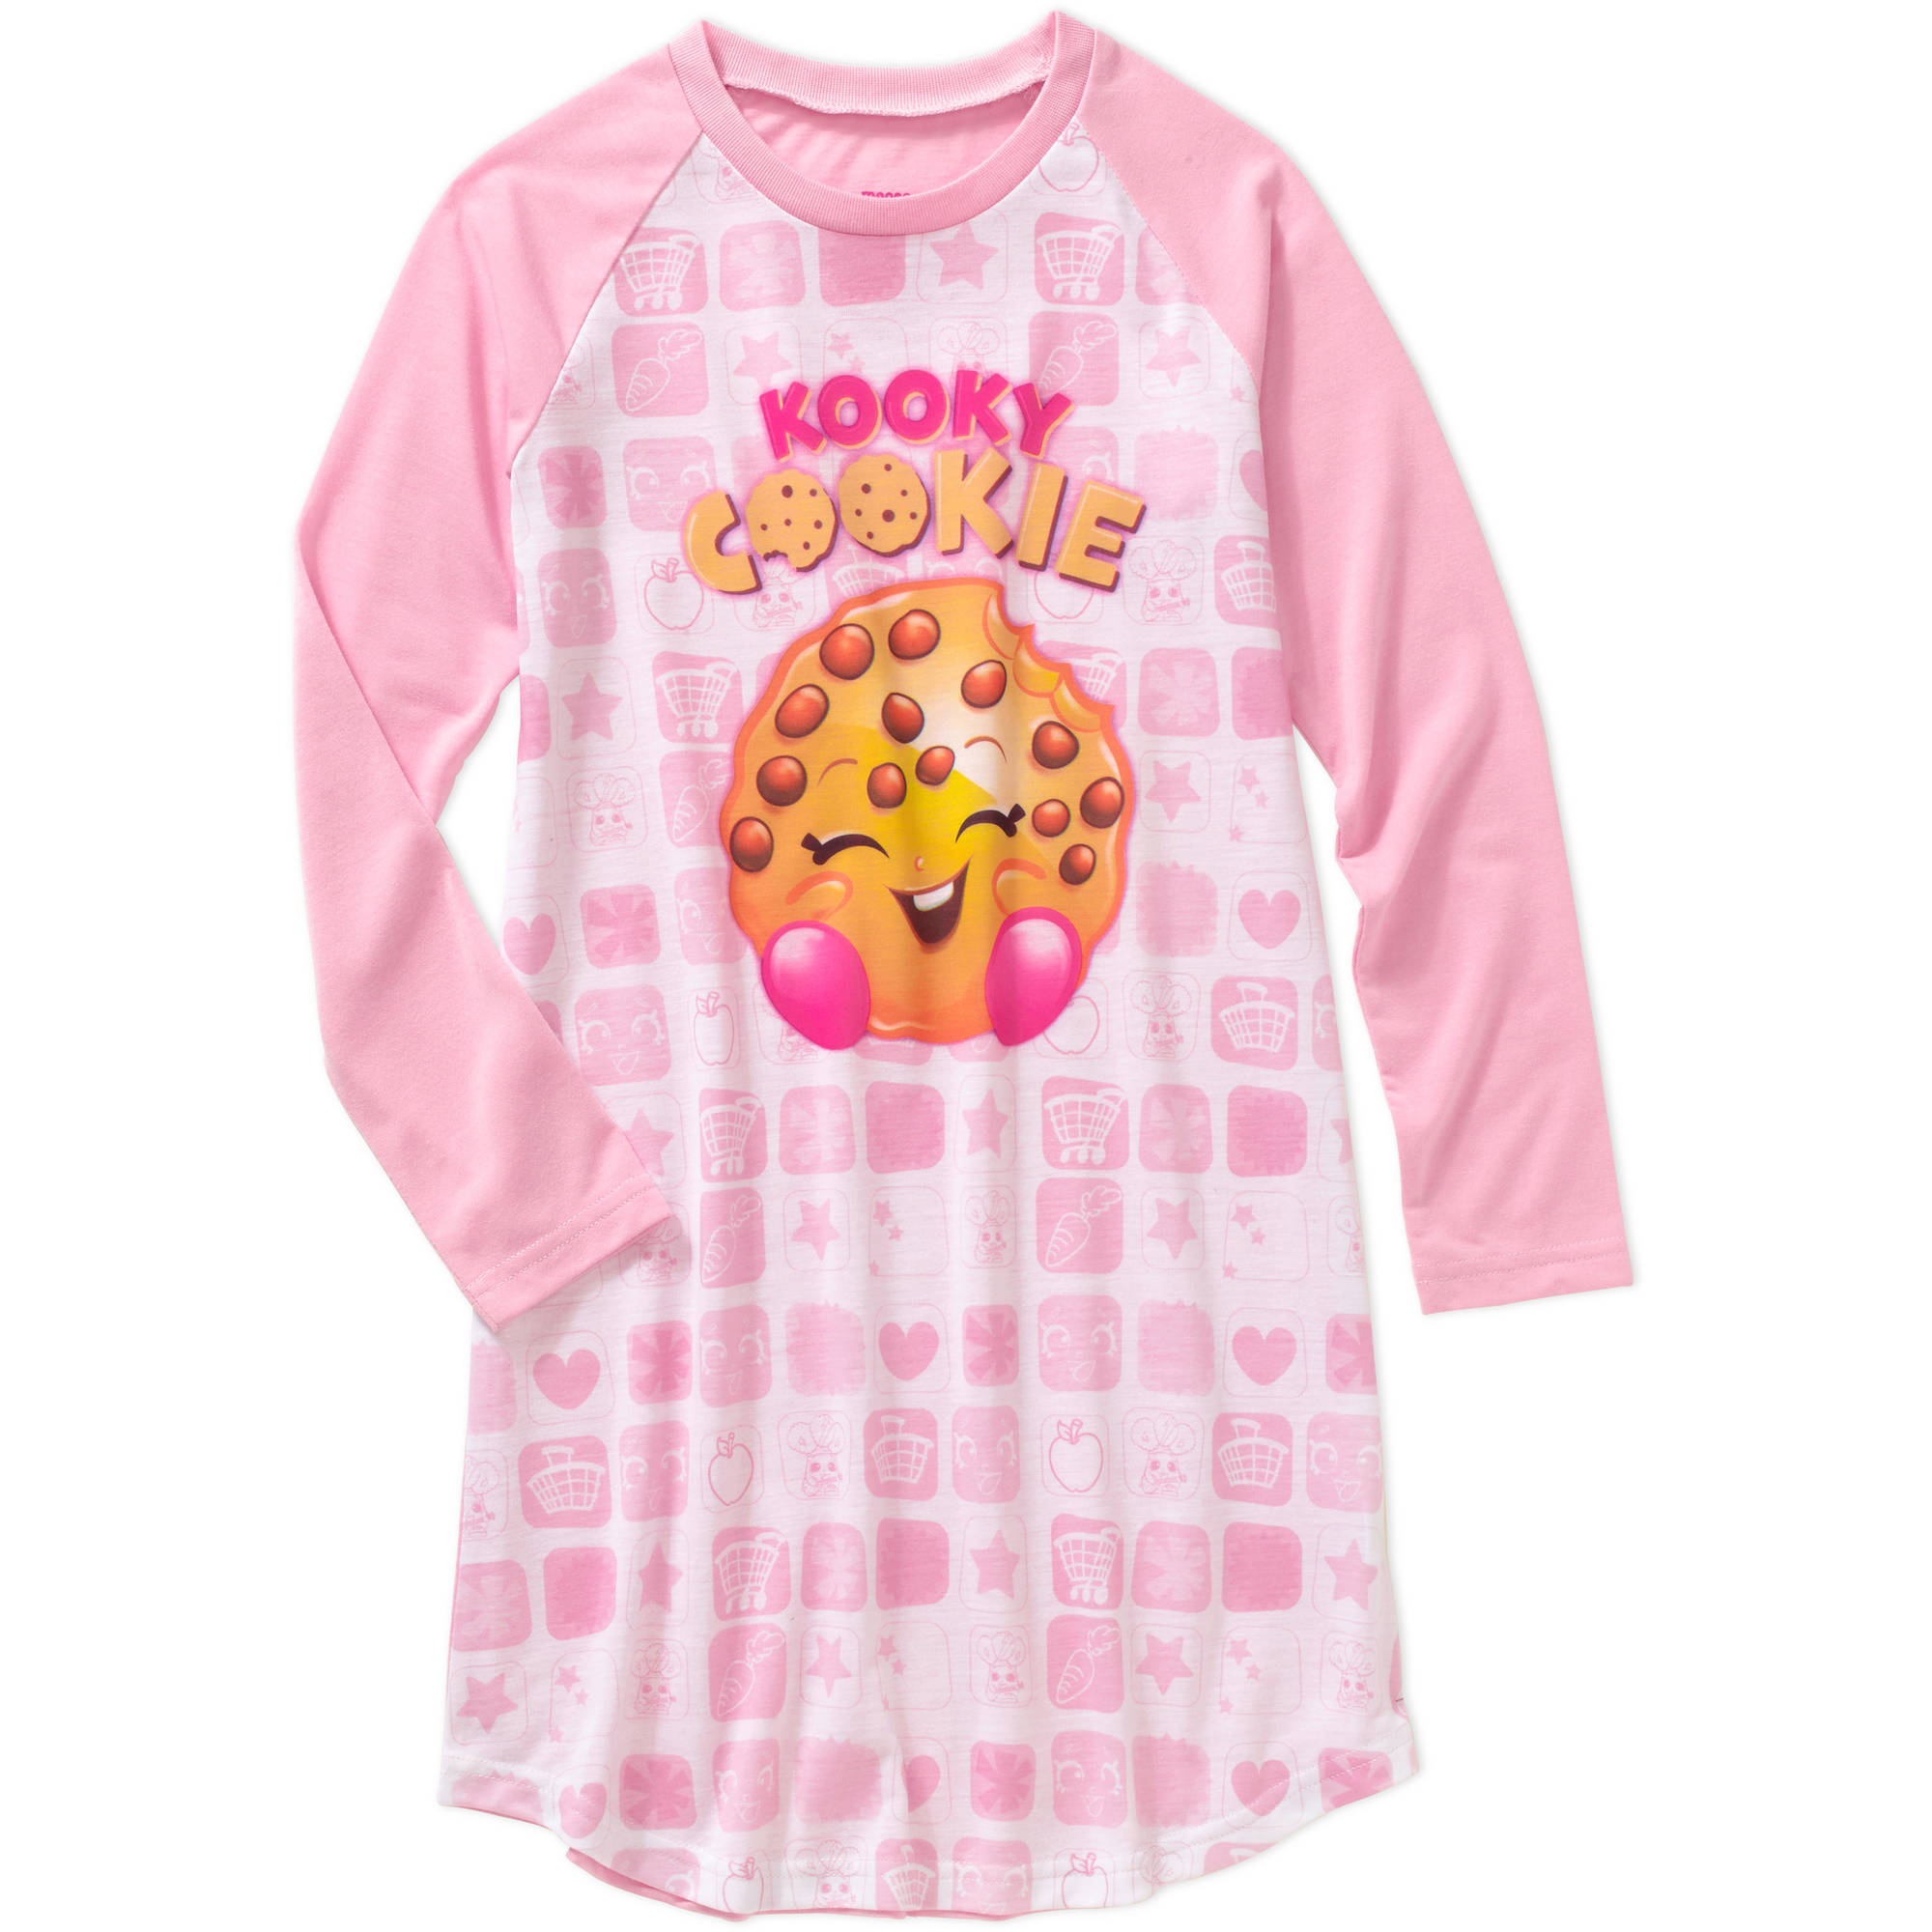 Shopkins Girls' Long Sleeve Kooky Cookie Nightgown